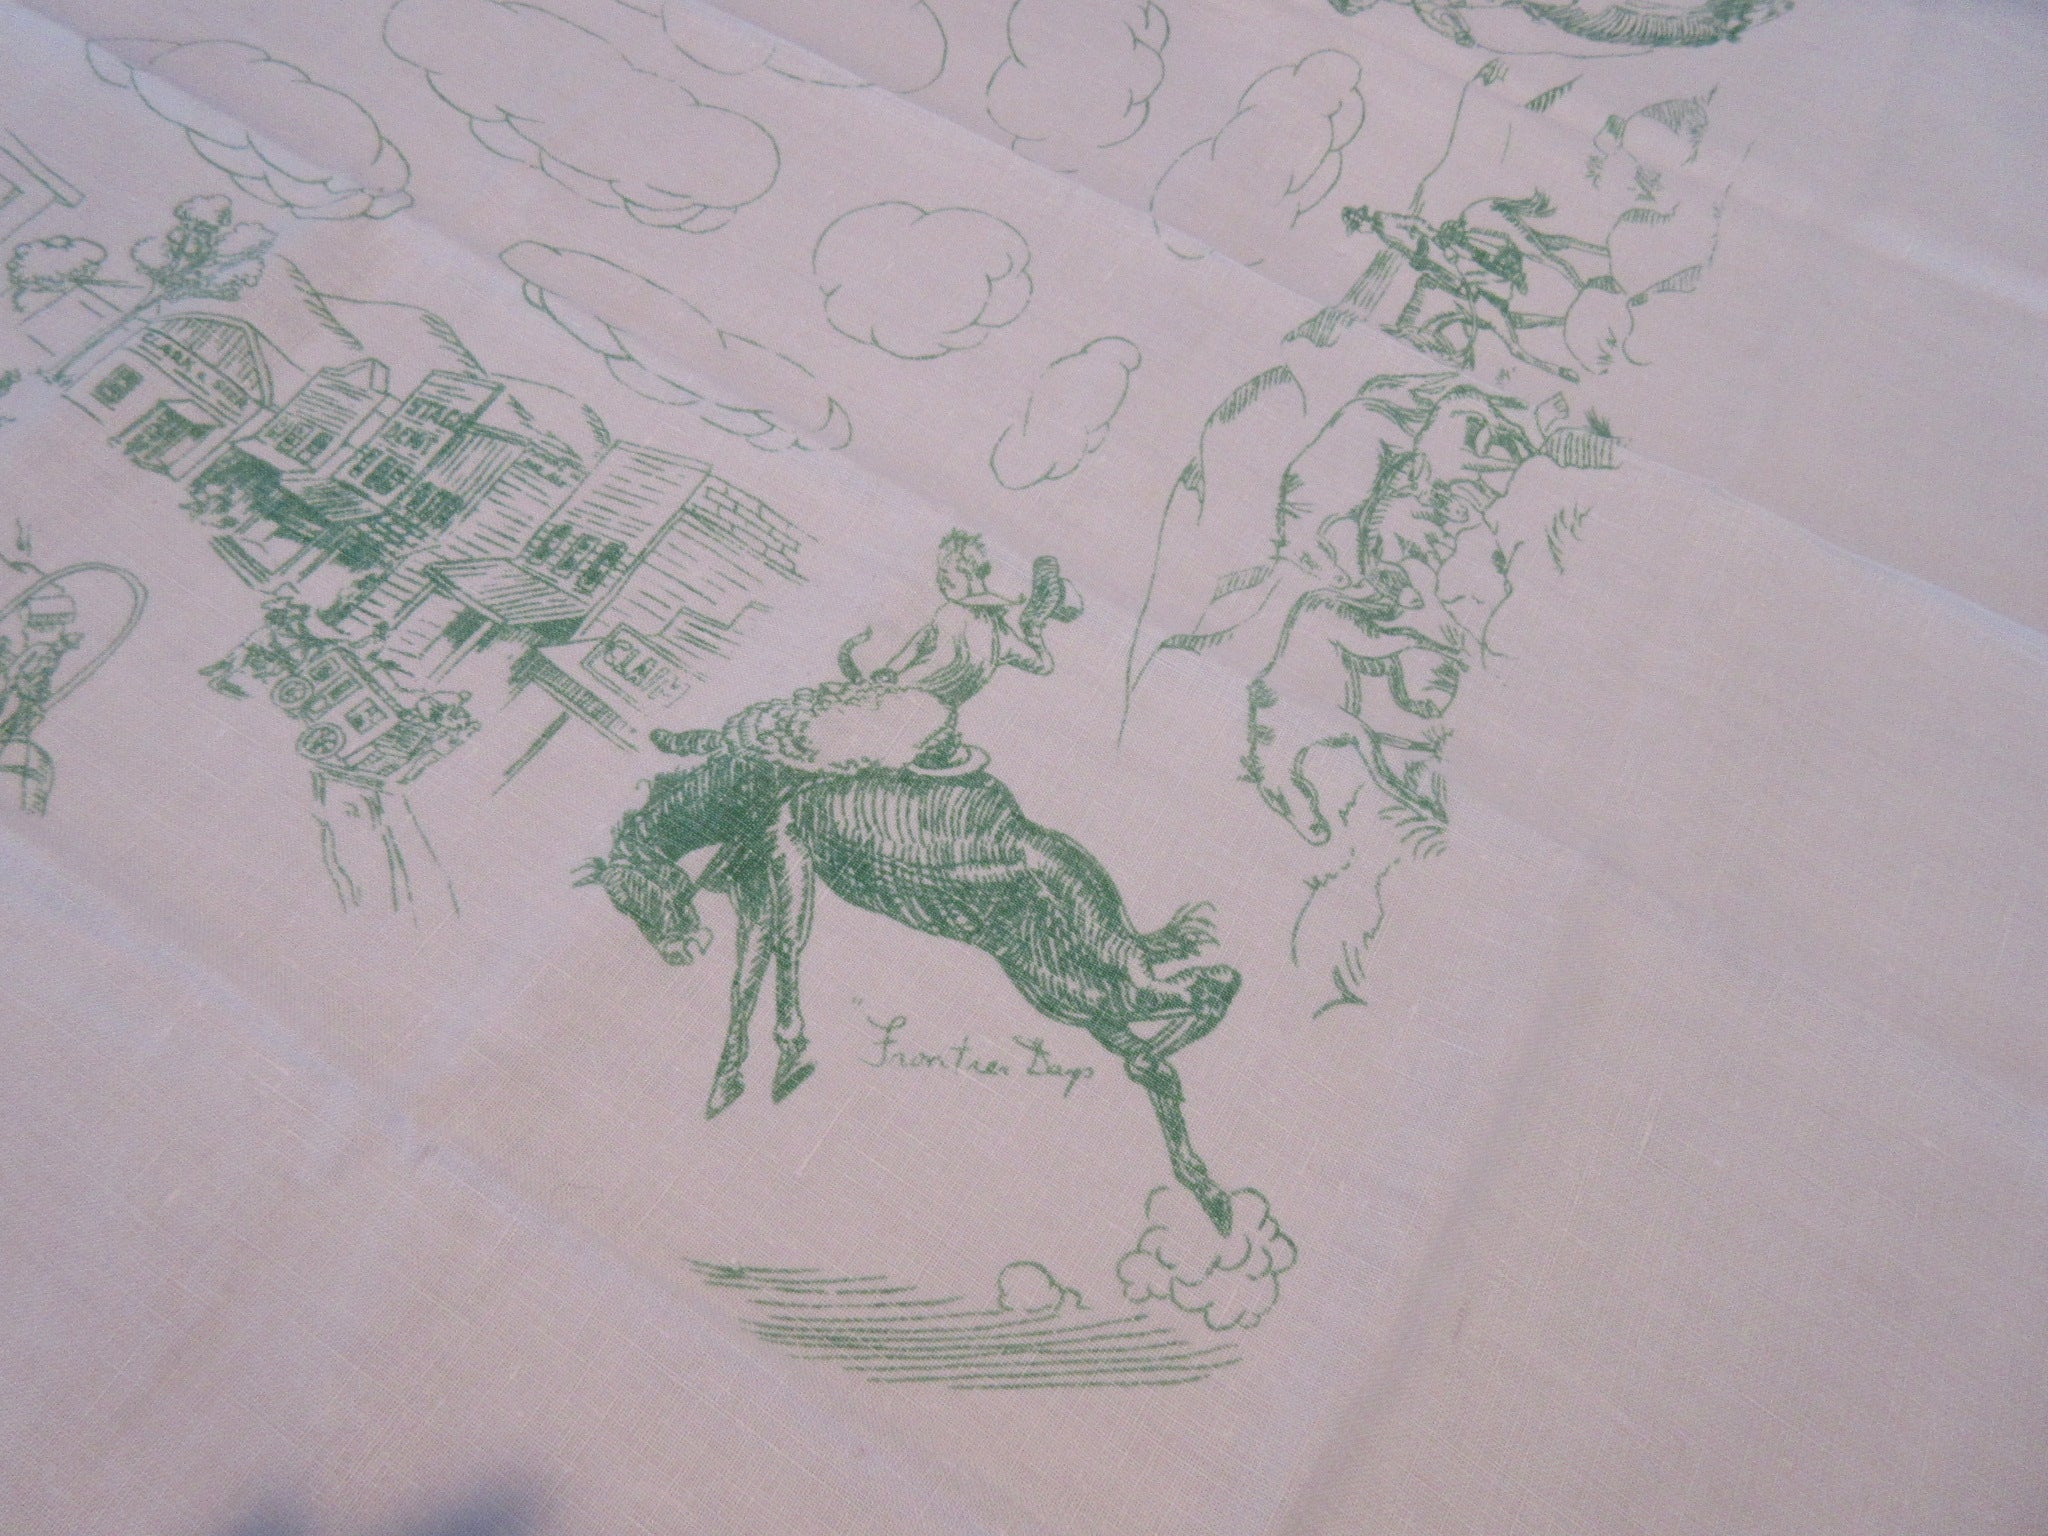 HTF Green Frontier Days Cowboy Wild West Napkins Linen Novelty Vintage Printed Tablecloth (43 X 42)